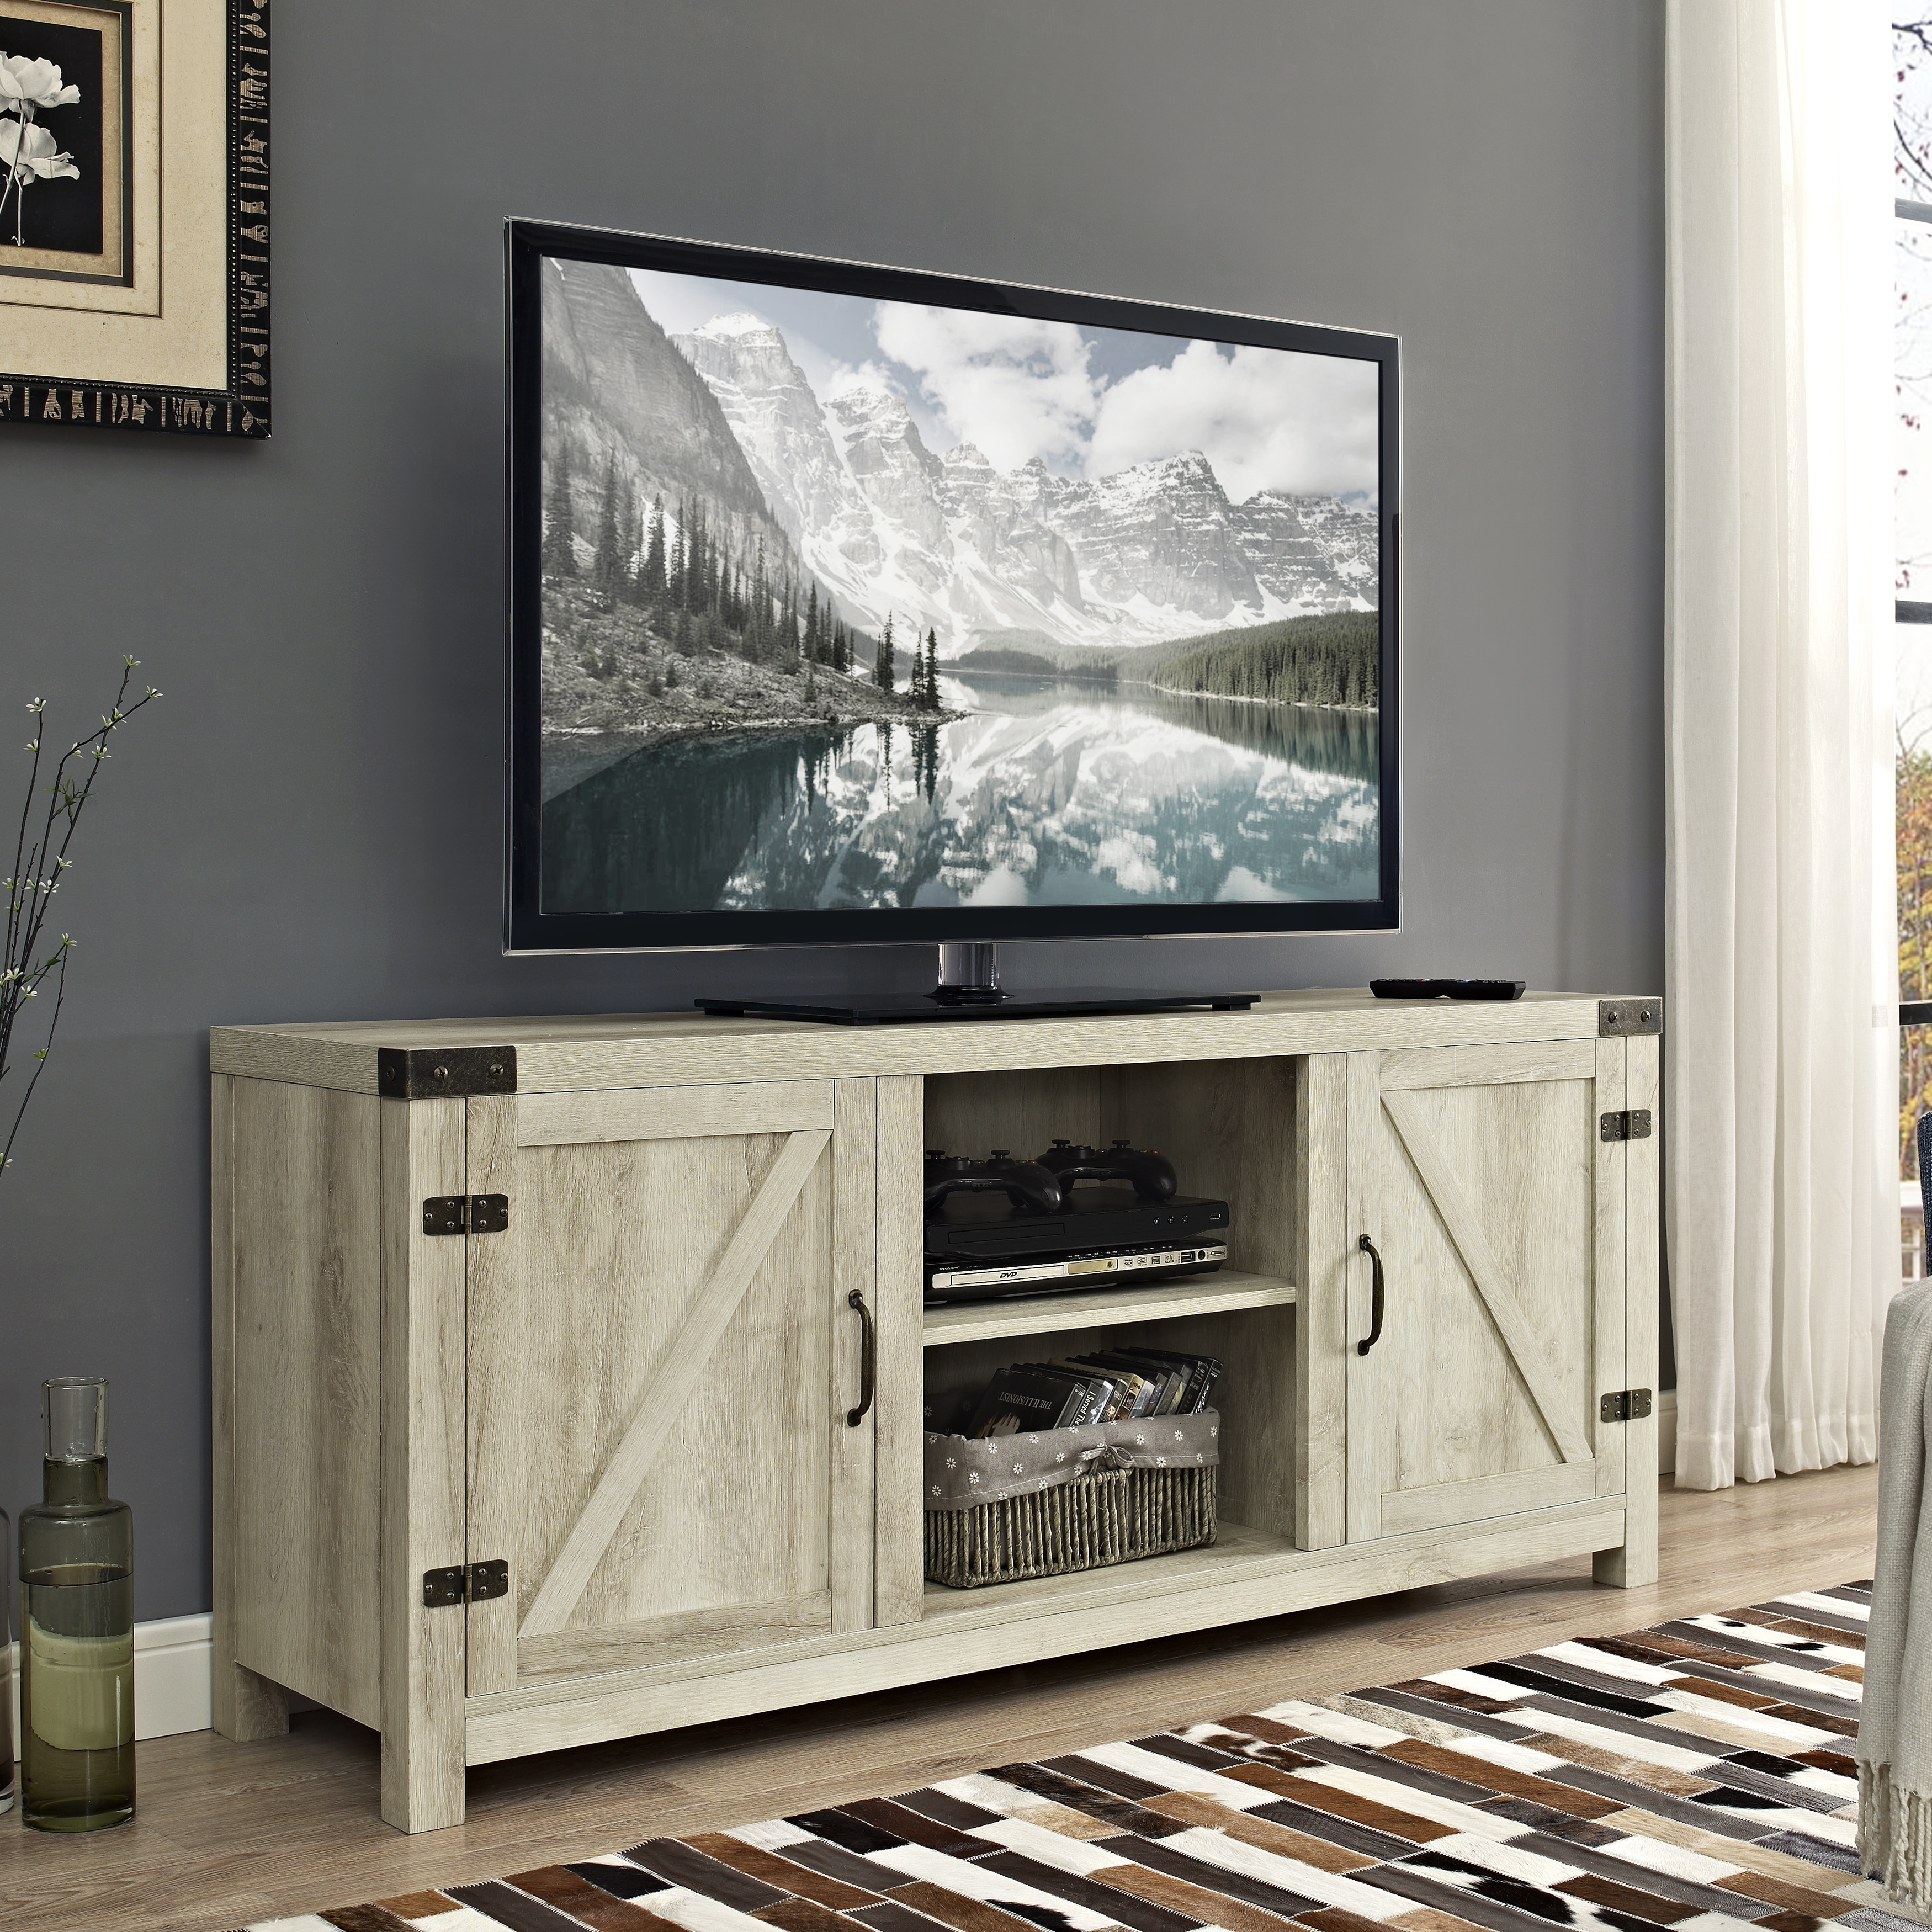 The Gray Barn Firebranch Barn Door TV Stand (2 Options Available)